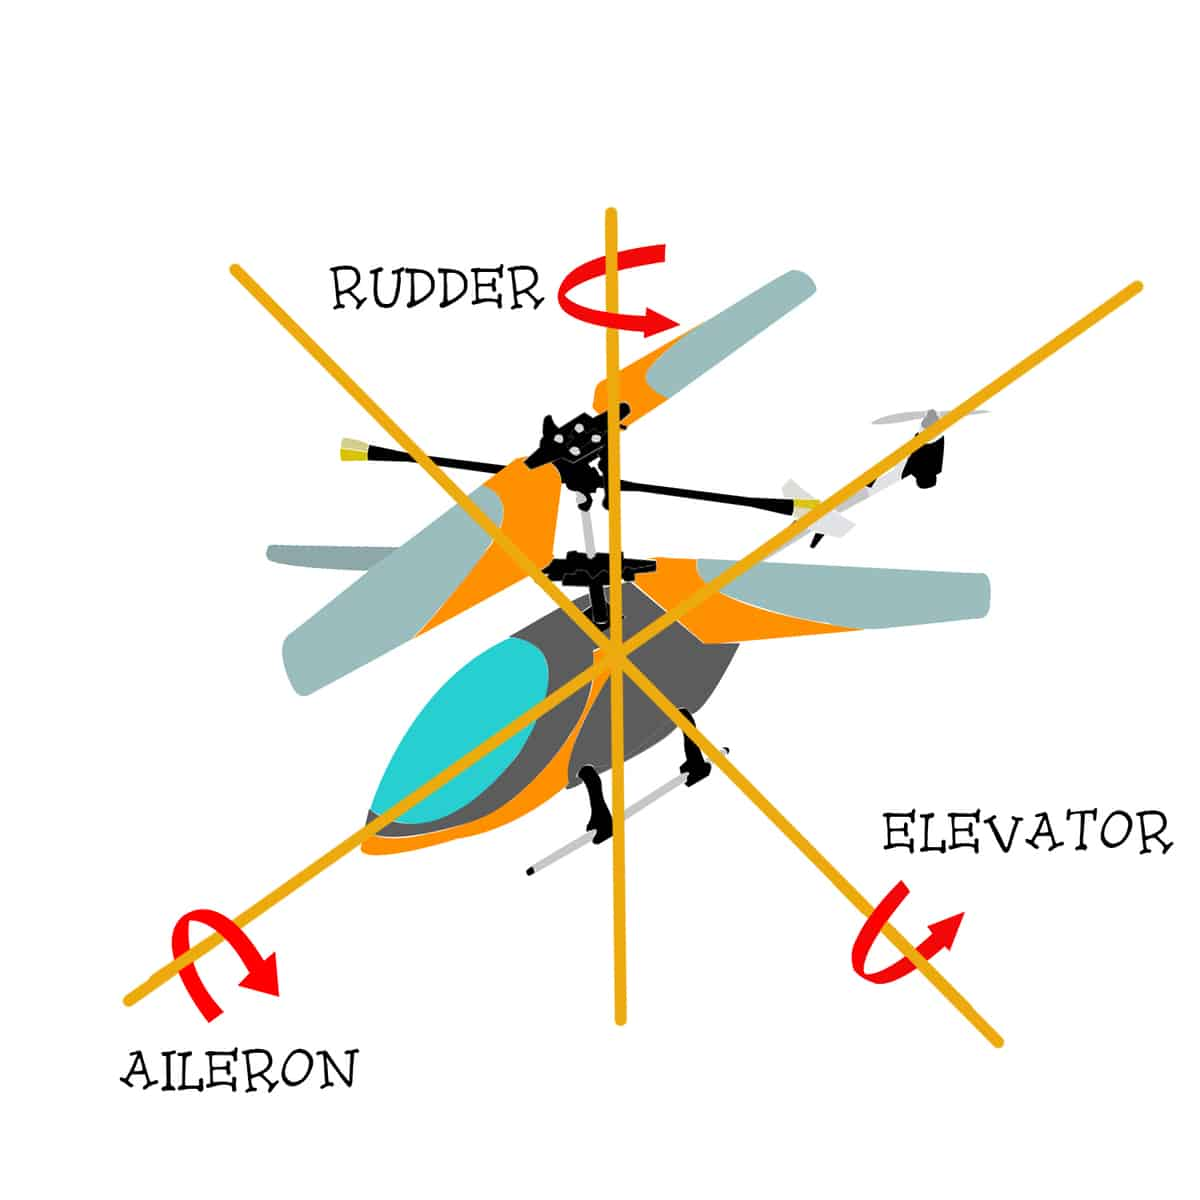 Flying RC heli : Aileron, Rudder, Elevator